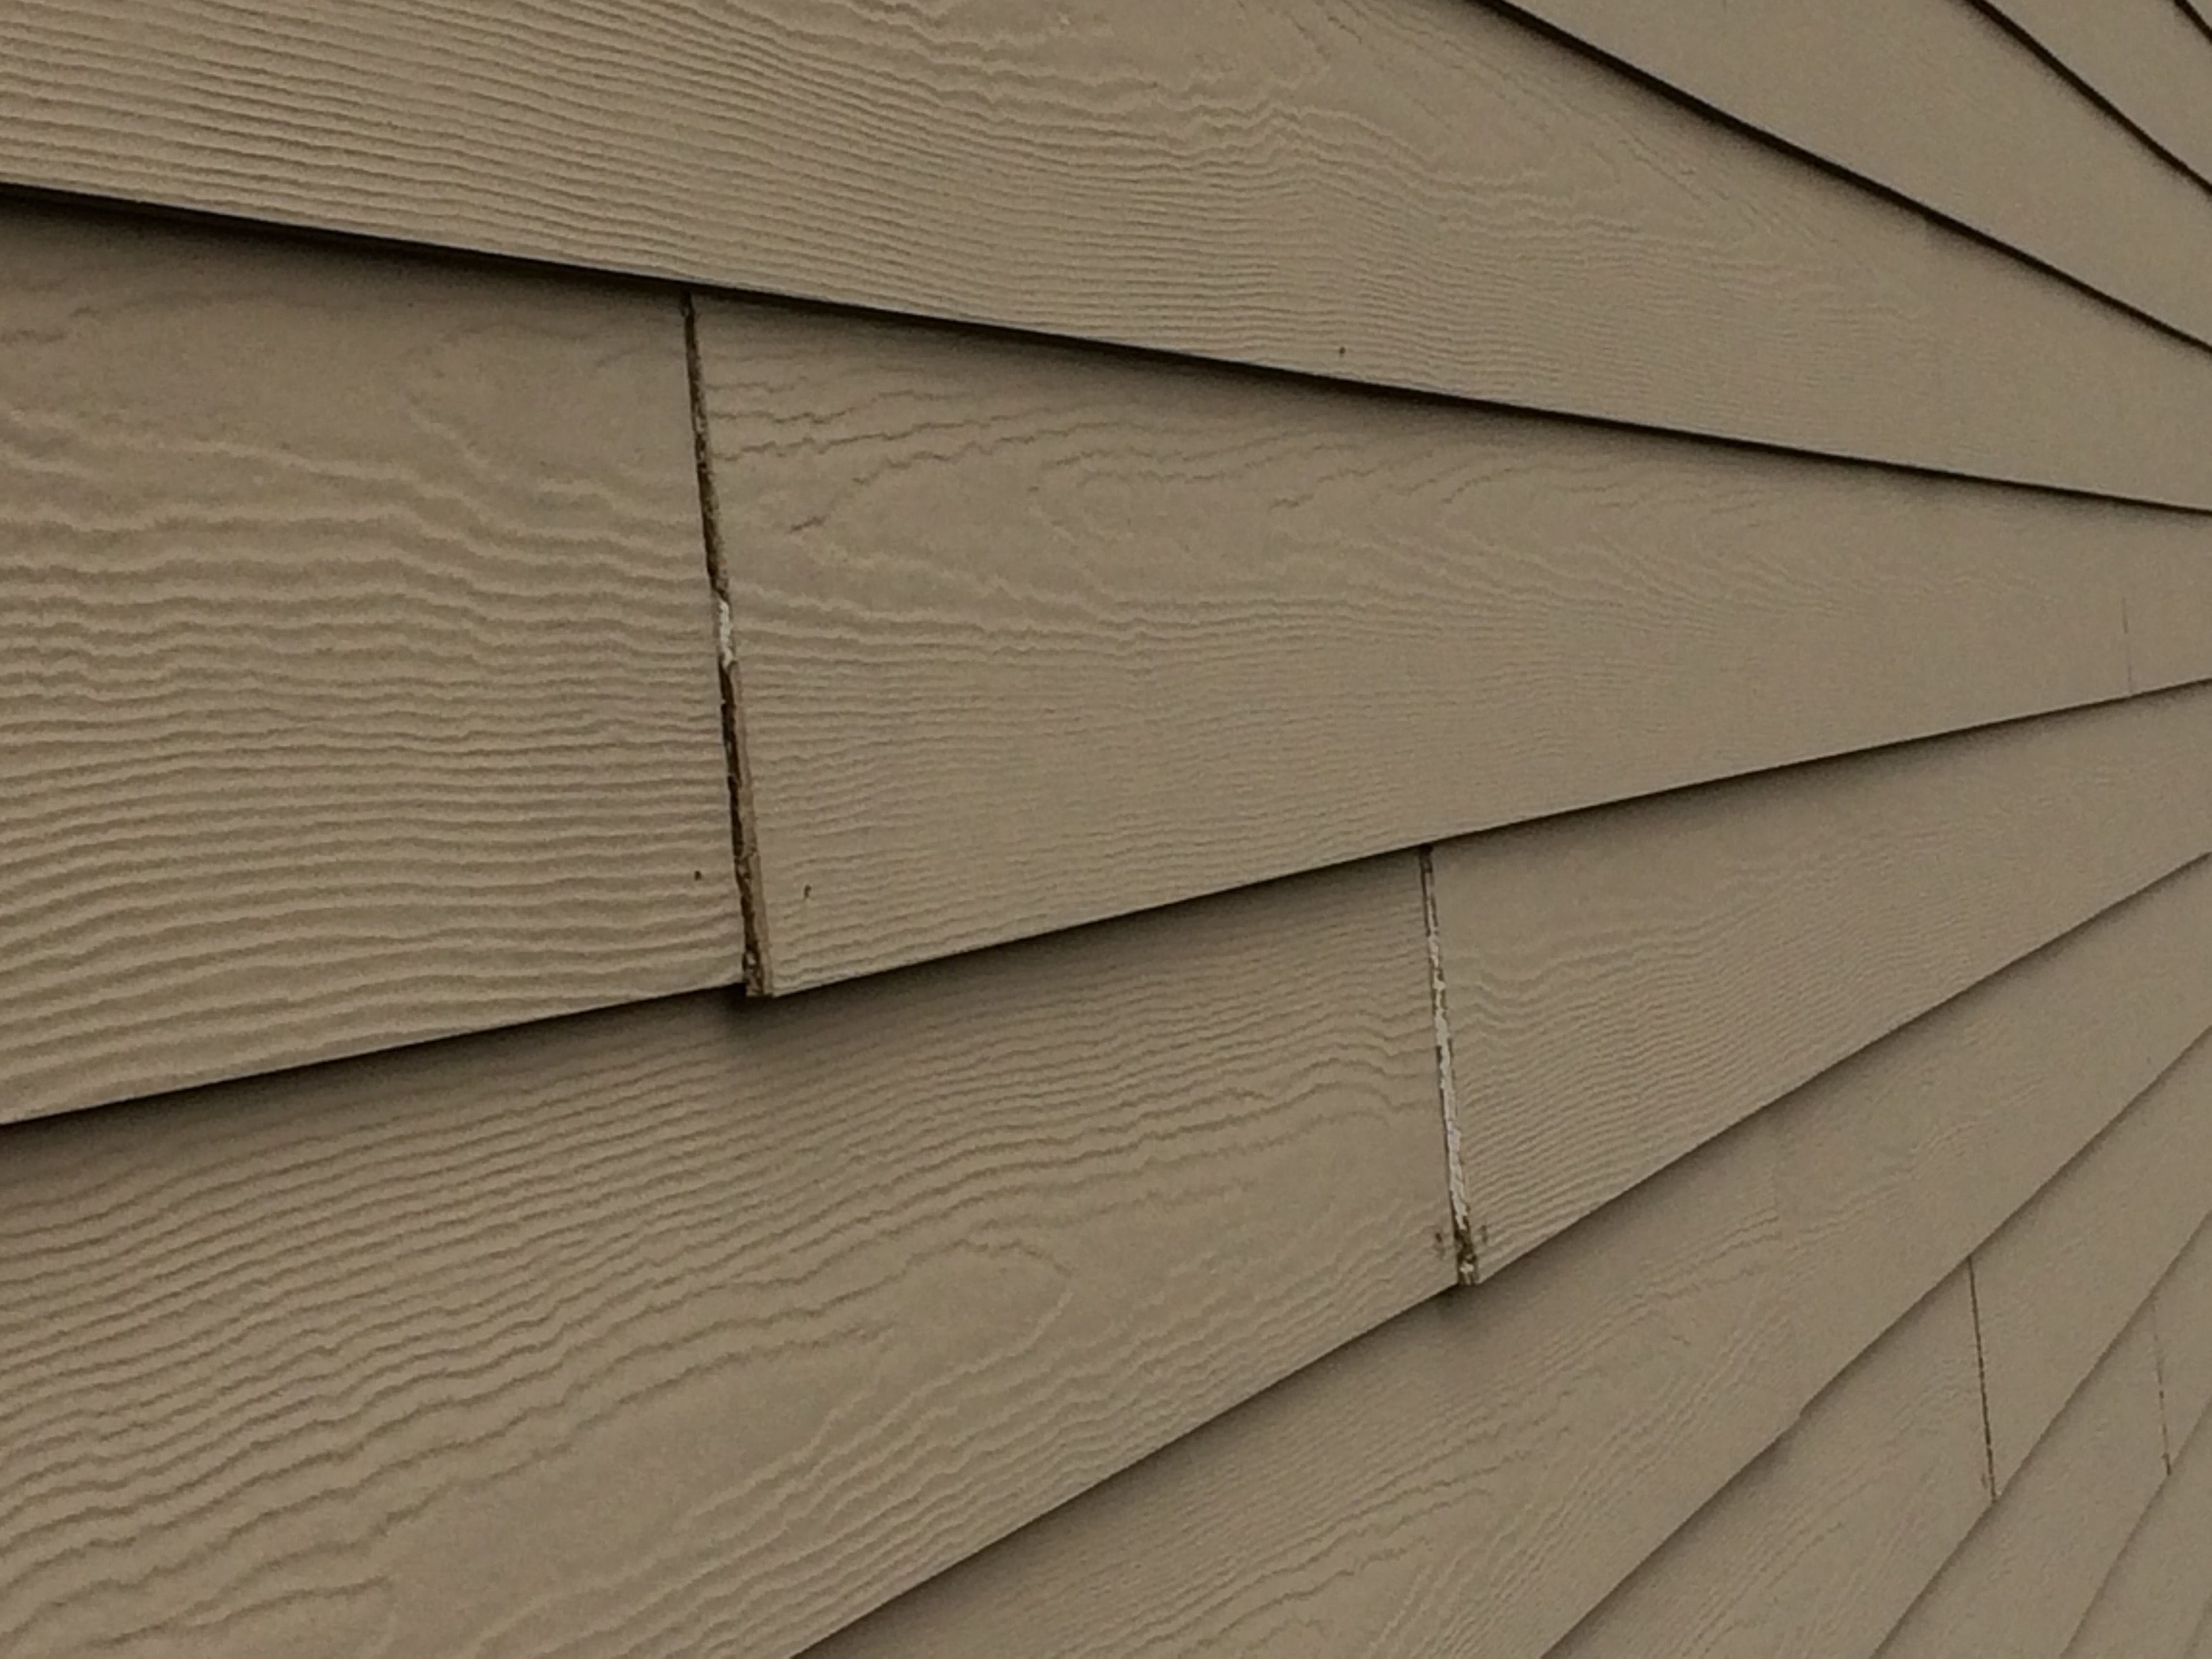 Top 46 reviews and complaints about james hardie siding for Wood siding vs hardiplank